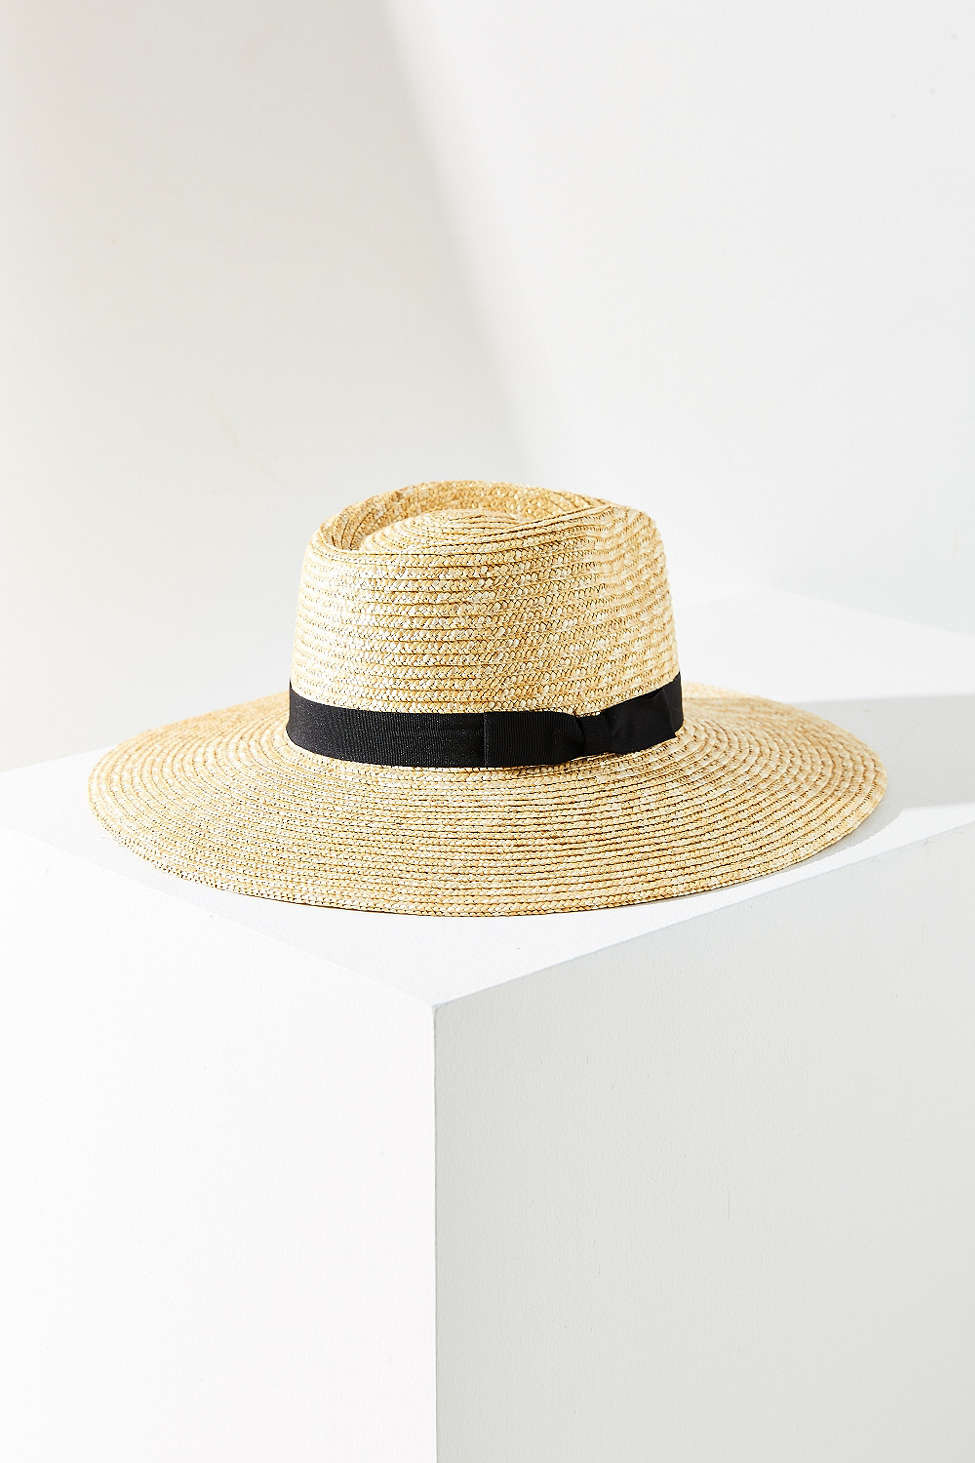 Ace Of Something The Arizona Large Panama Hat  available at Urban Outfitters- $69